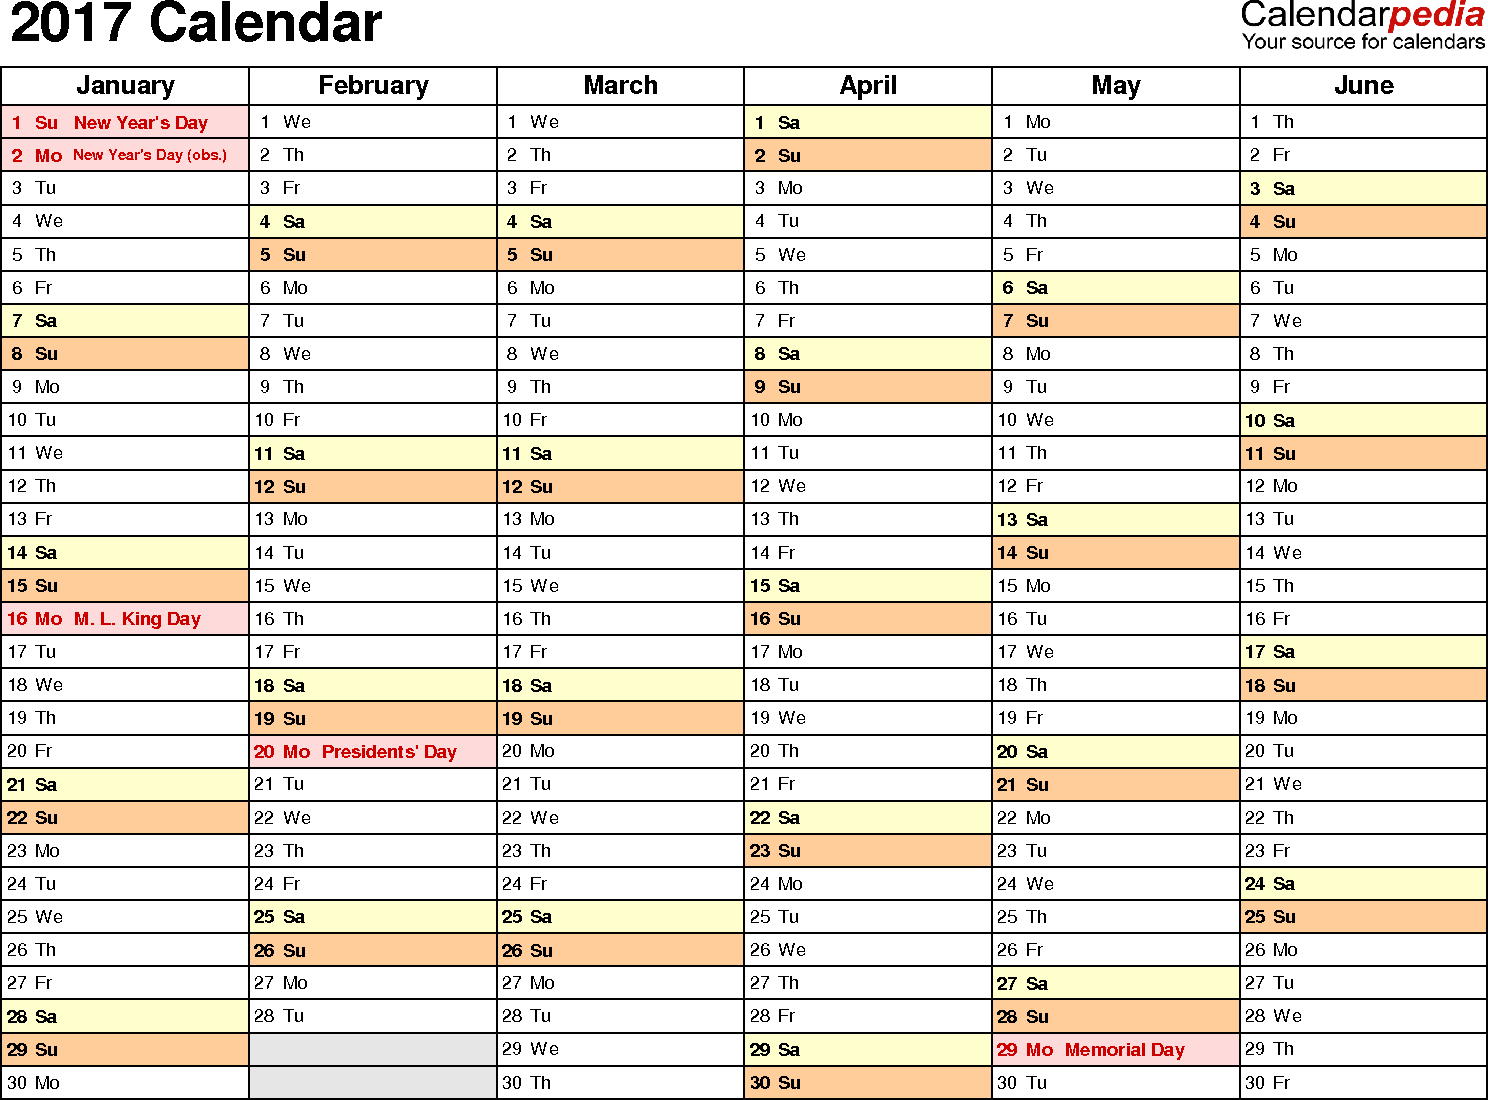 Ediblewildsus  Marvellous  Calendar  Download  Free Printable Excel Templates Xls With Inspiring Template   Calendar For Excel Months Horizontally  Pages Landscape Orientation With Awesome How To Separate Excel Windows Also How To Count Words In Excel In Addition How To Use Solver In Excel  And Check For Duplicates In Excel As Well As Excel Chapter  Grader Project Additionally Excel Safe Mode From Calendarpediacom With Ediblewildsus  Inspiring  Calendar  Download  Free Printable Excel Templates Xls With Awesome Template   Calendar For Excel Months Horizontally  Pages Landscape Orientation And Marvellous How To Separate Excel Windows Also How To Count Words In Excel In Addition How To Use Solver In Excel  From Calendarpediacom